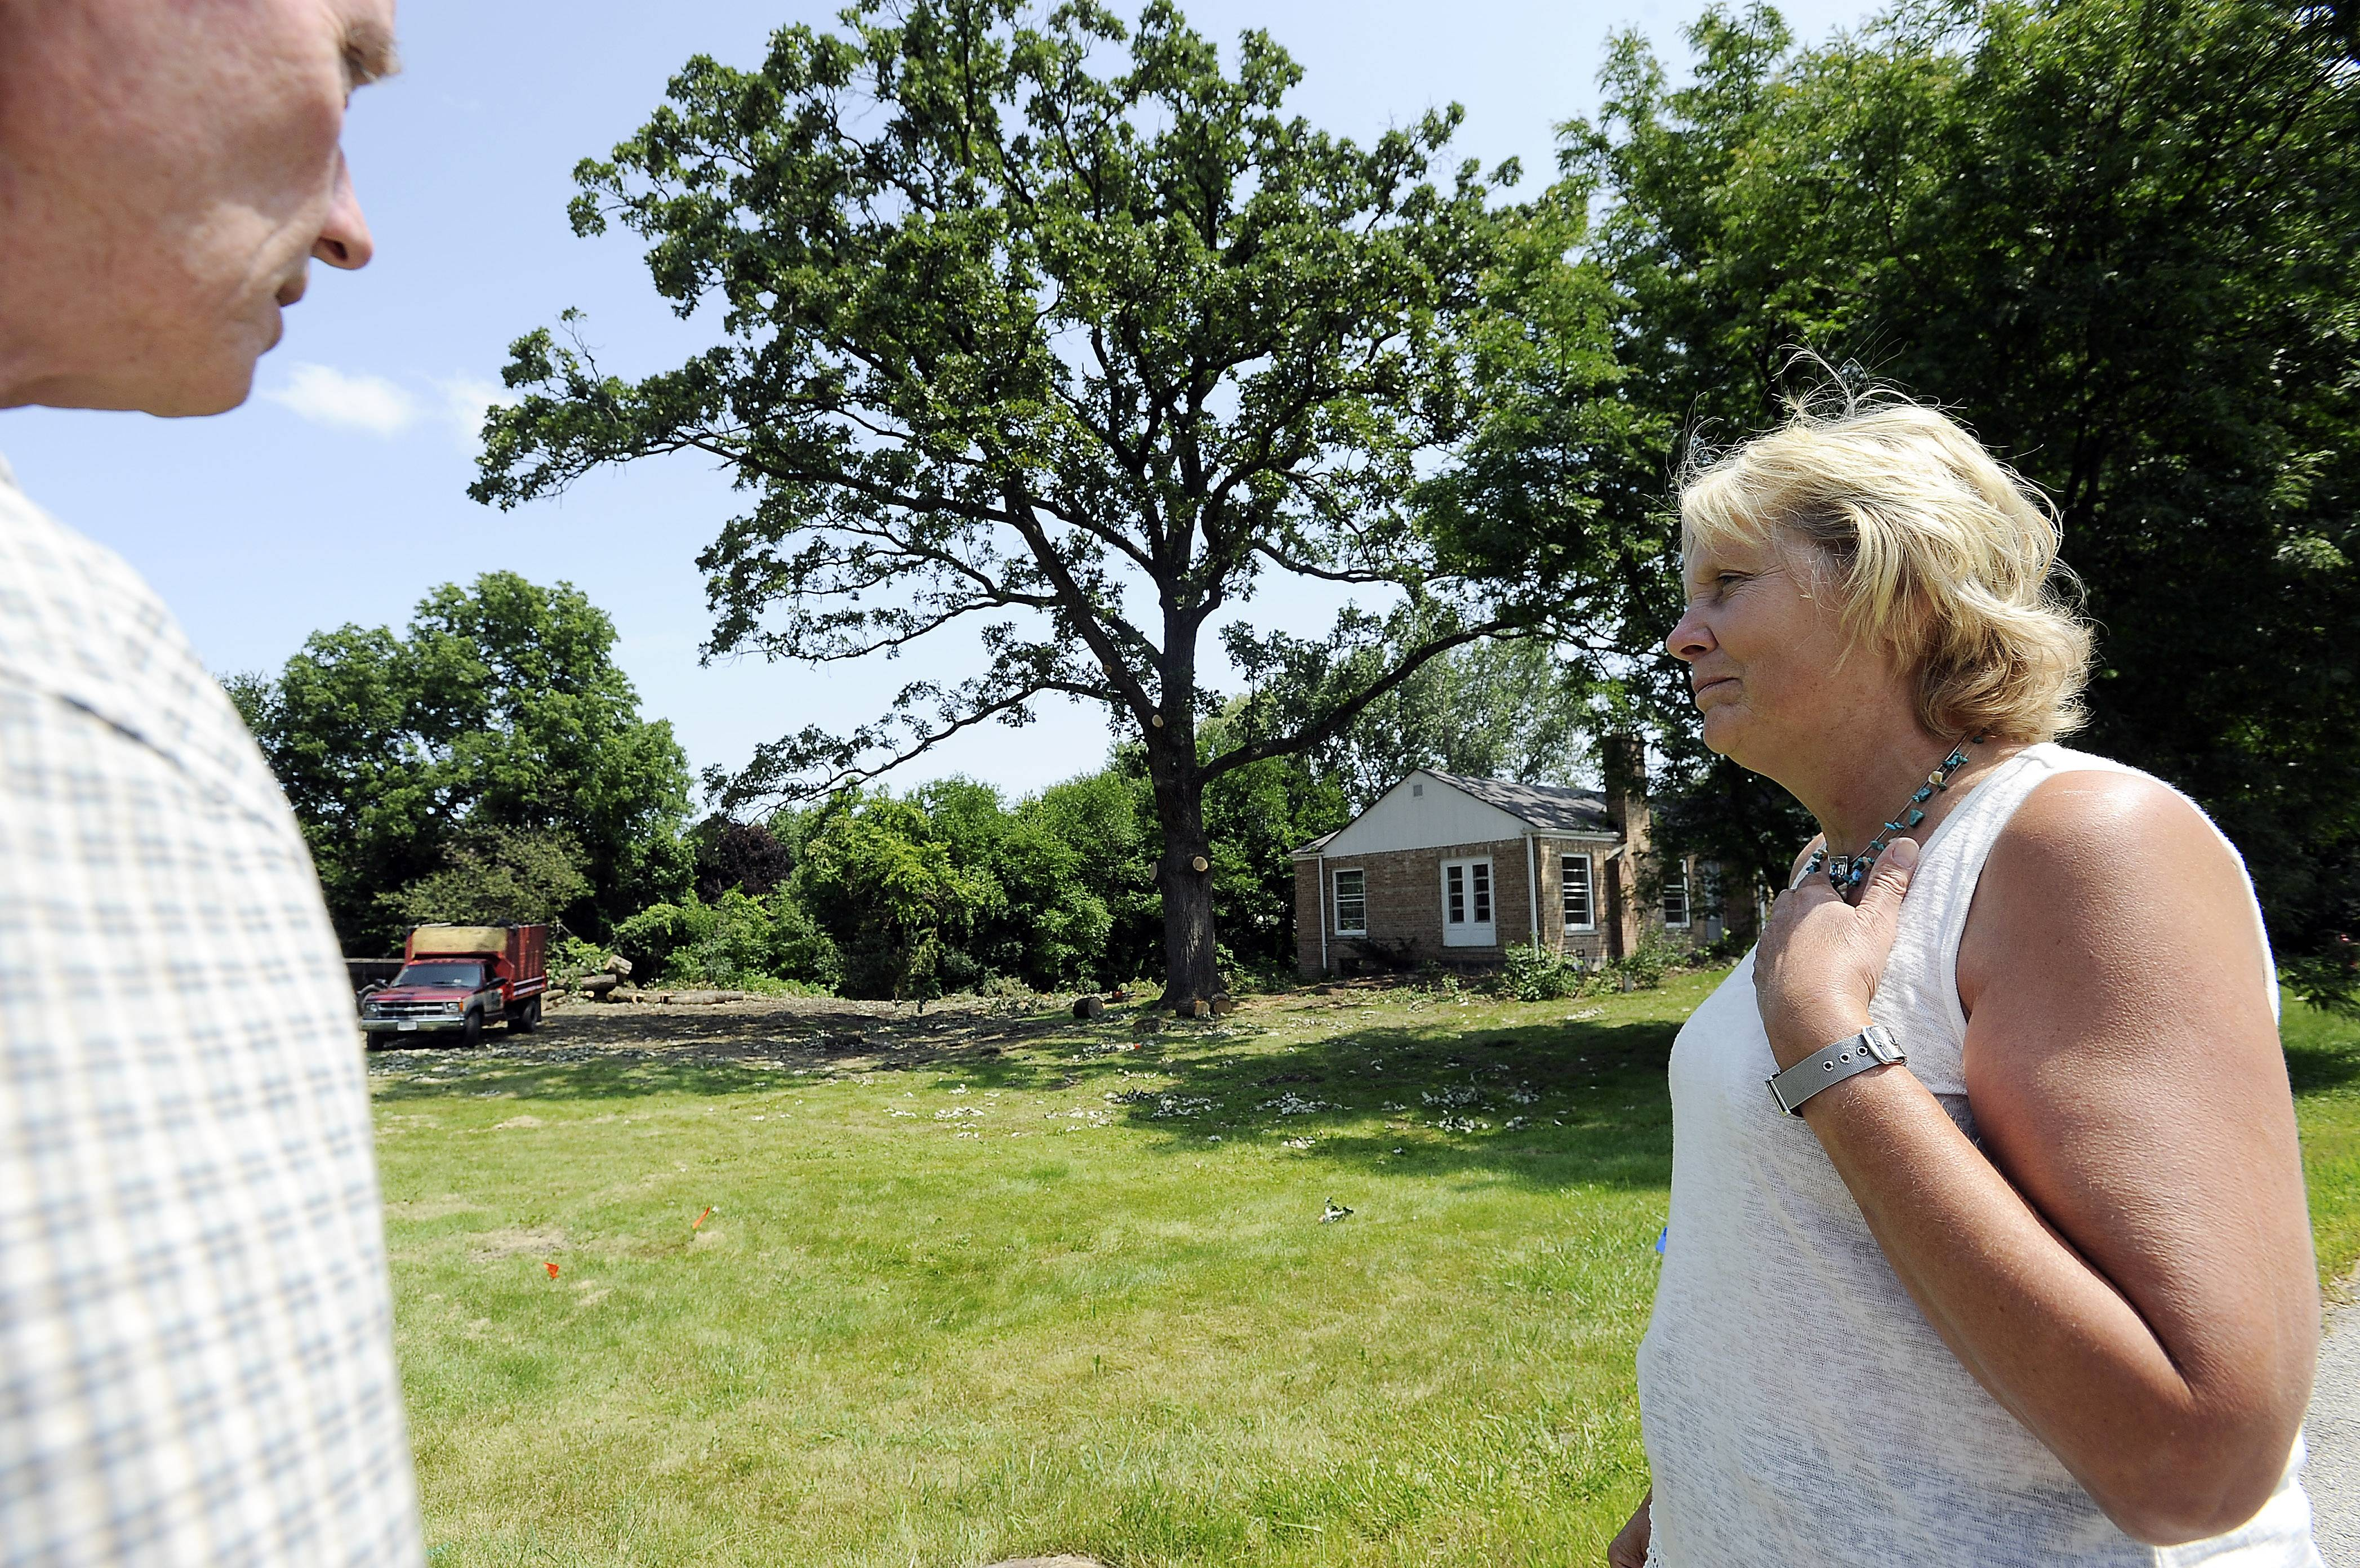 Joanne Kroll and her neighbor Stanley Reynolds tried to stop the removal of trees from land near their Rolling Meadows homes over the weekend. but city officials say the land's owner was within his right to cut down the trees.